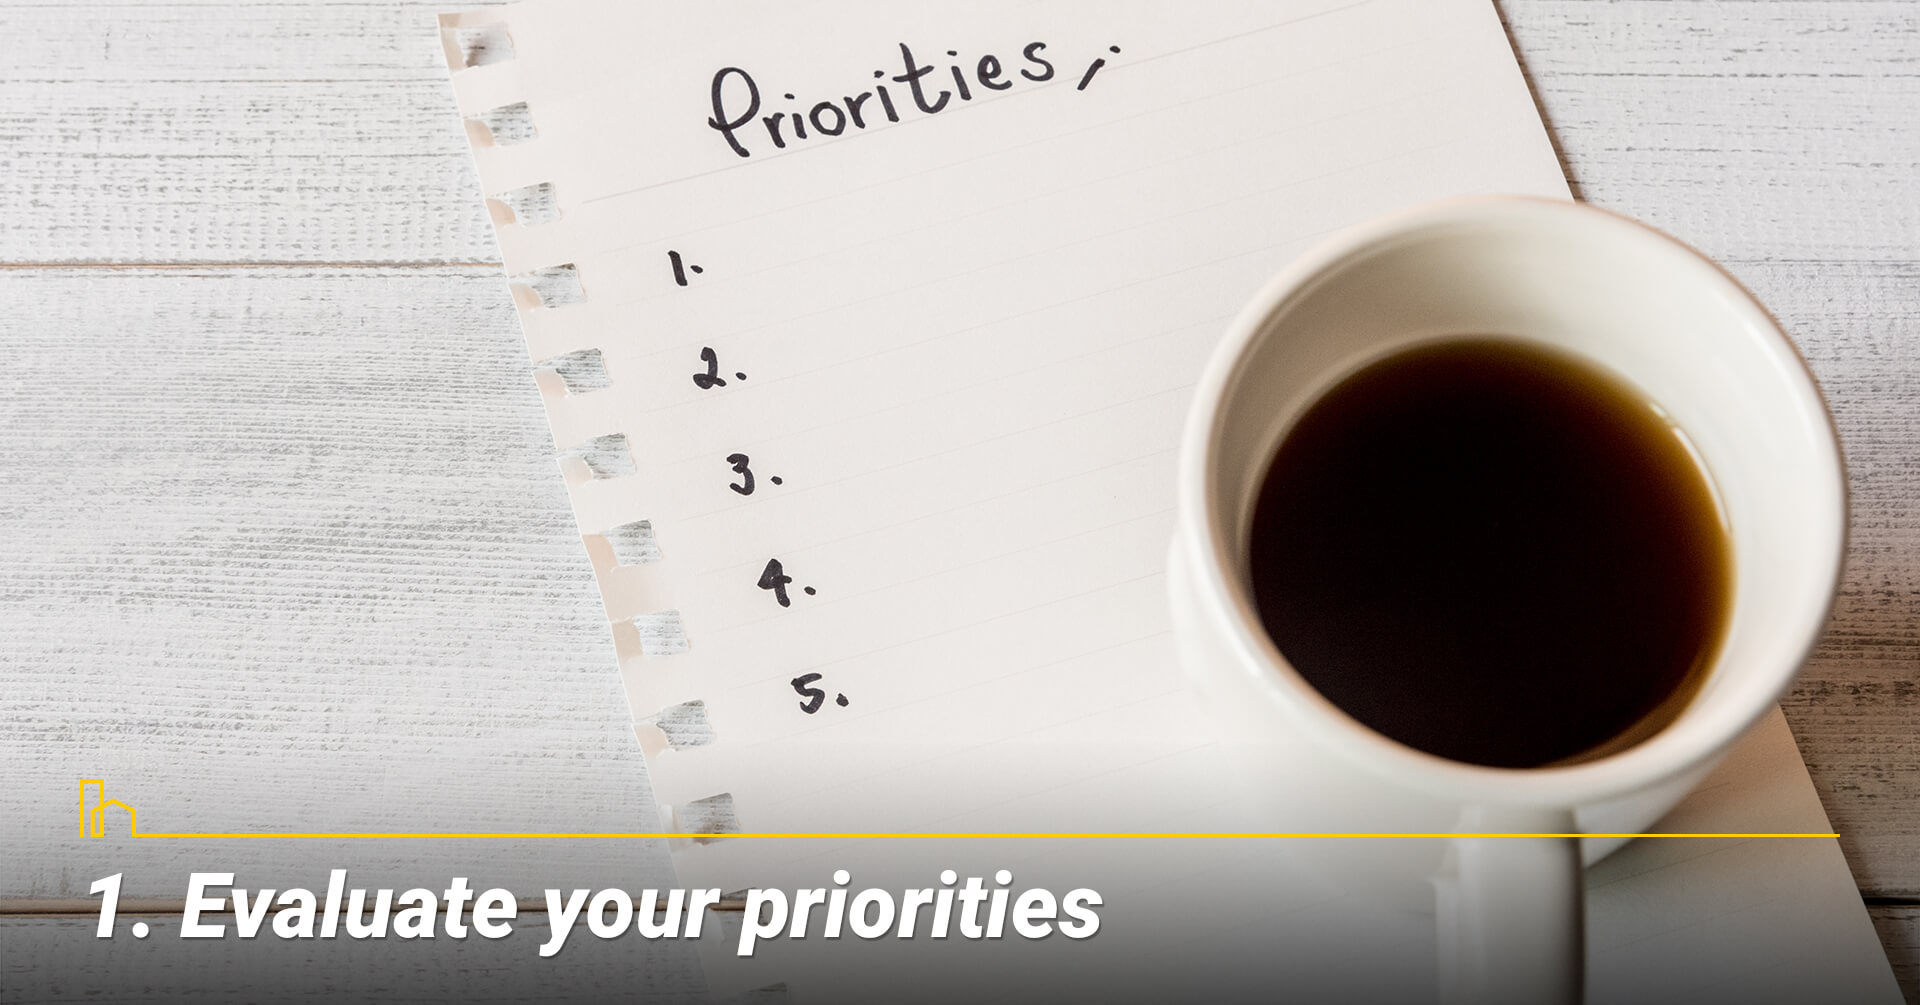 Evaluate your priorities